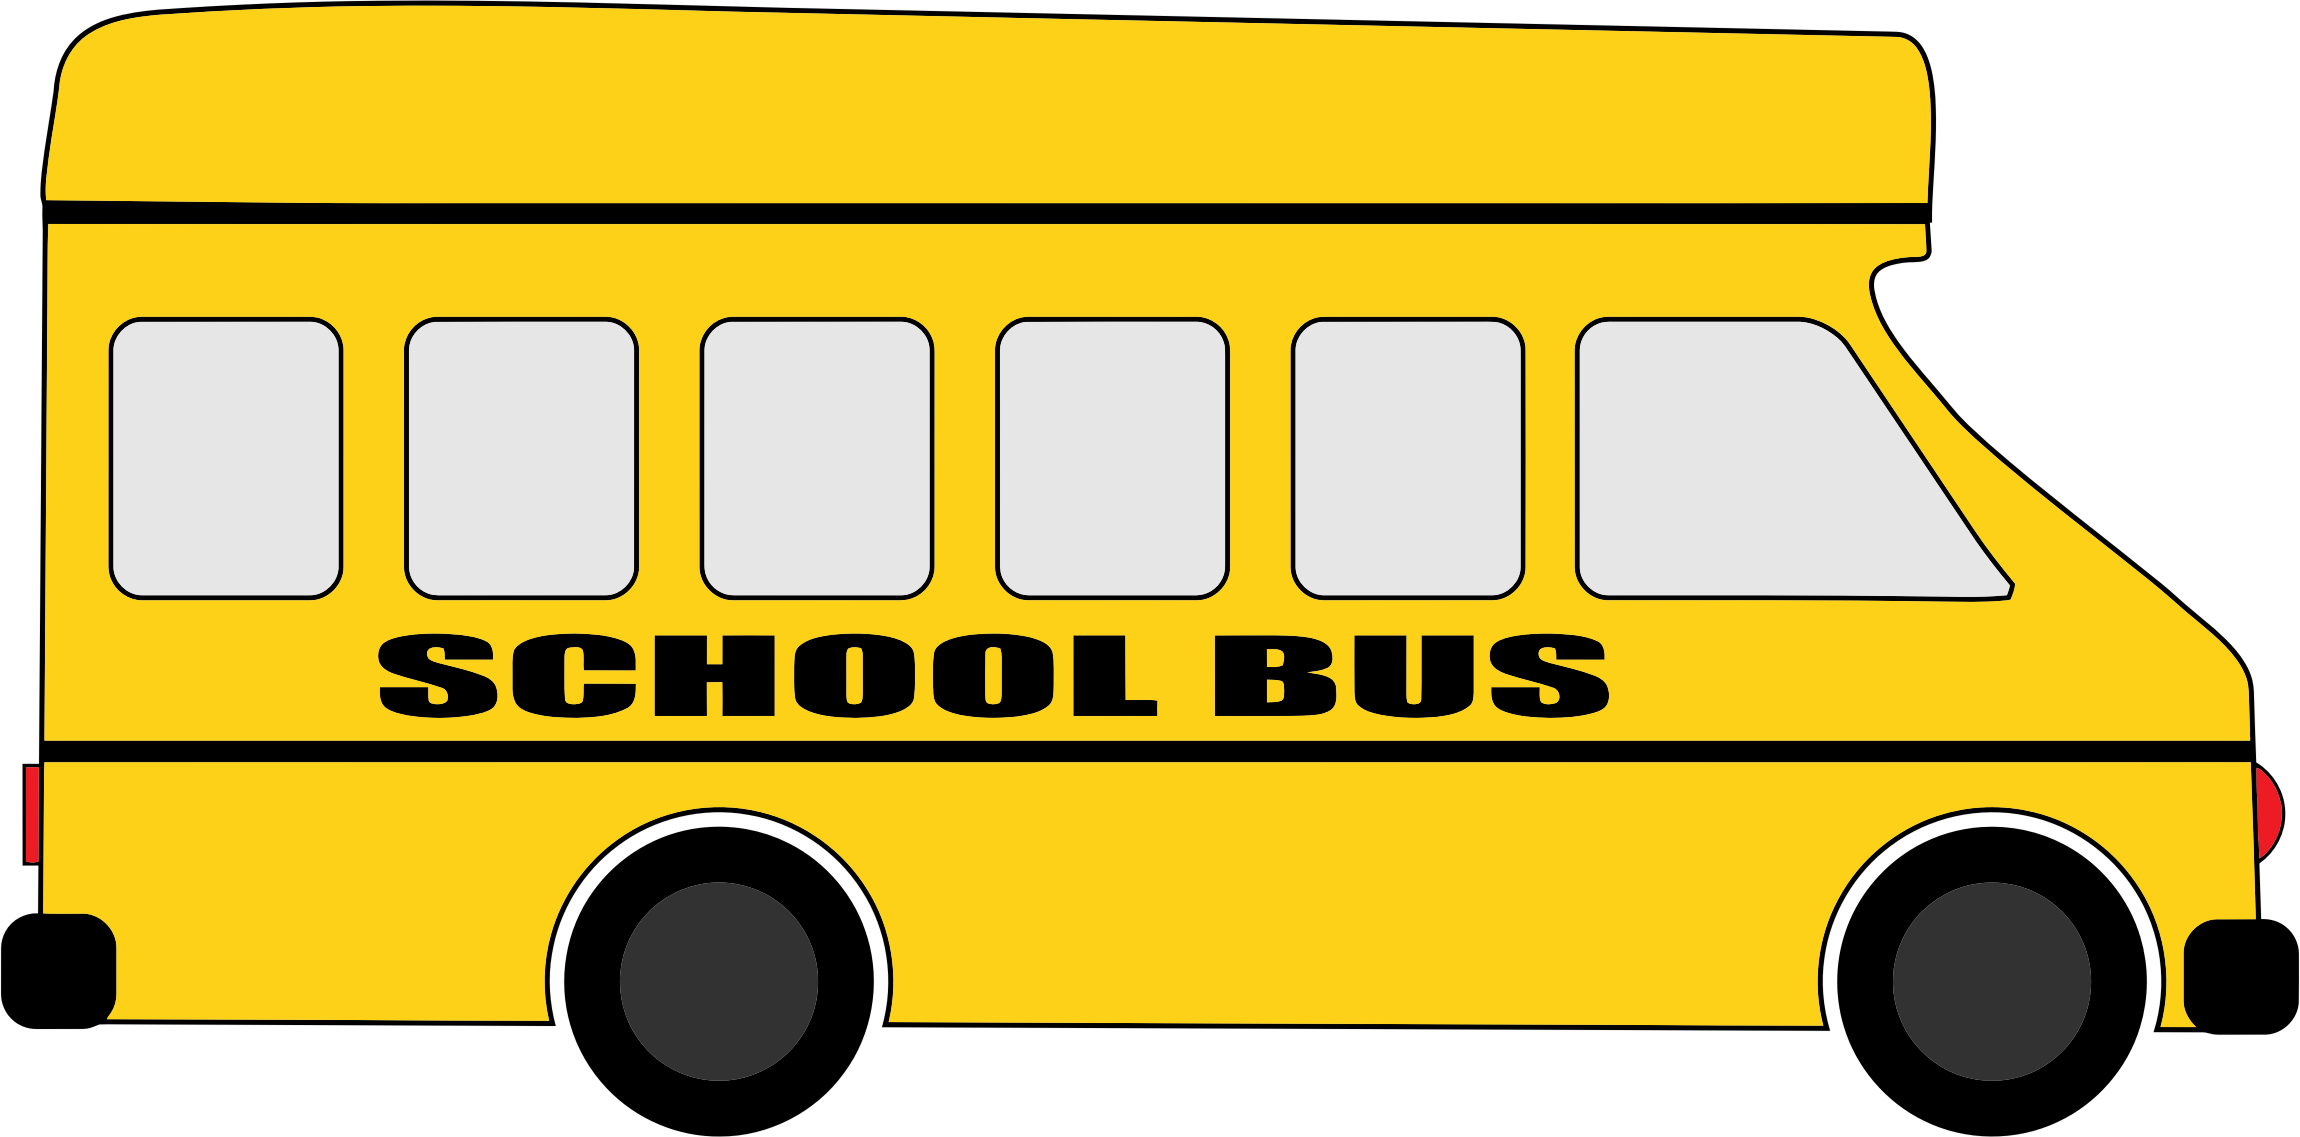 School bus clip art for kids free clipart images wikiclipart